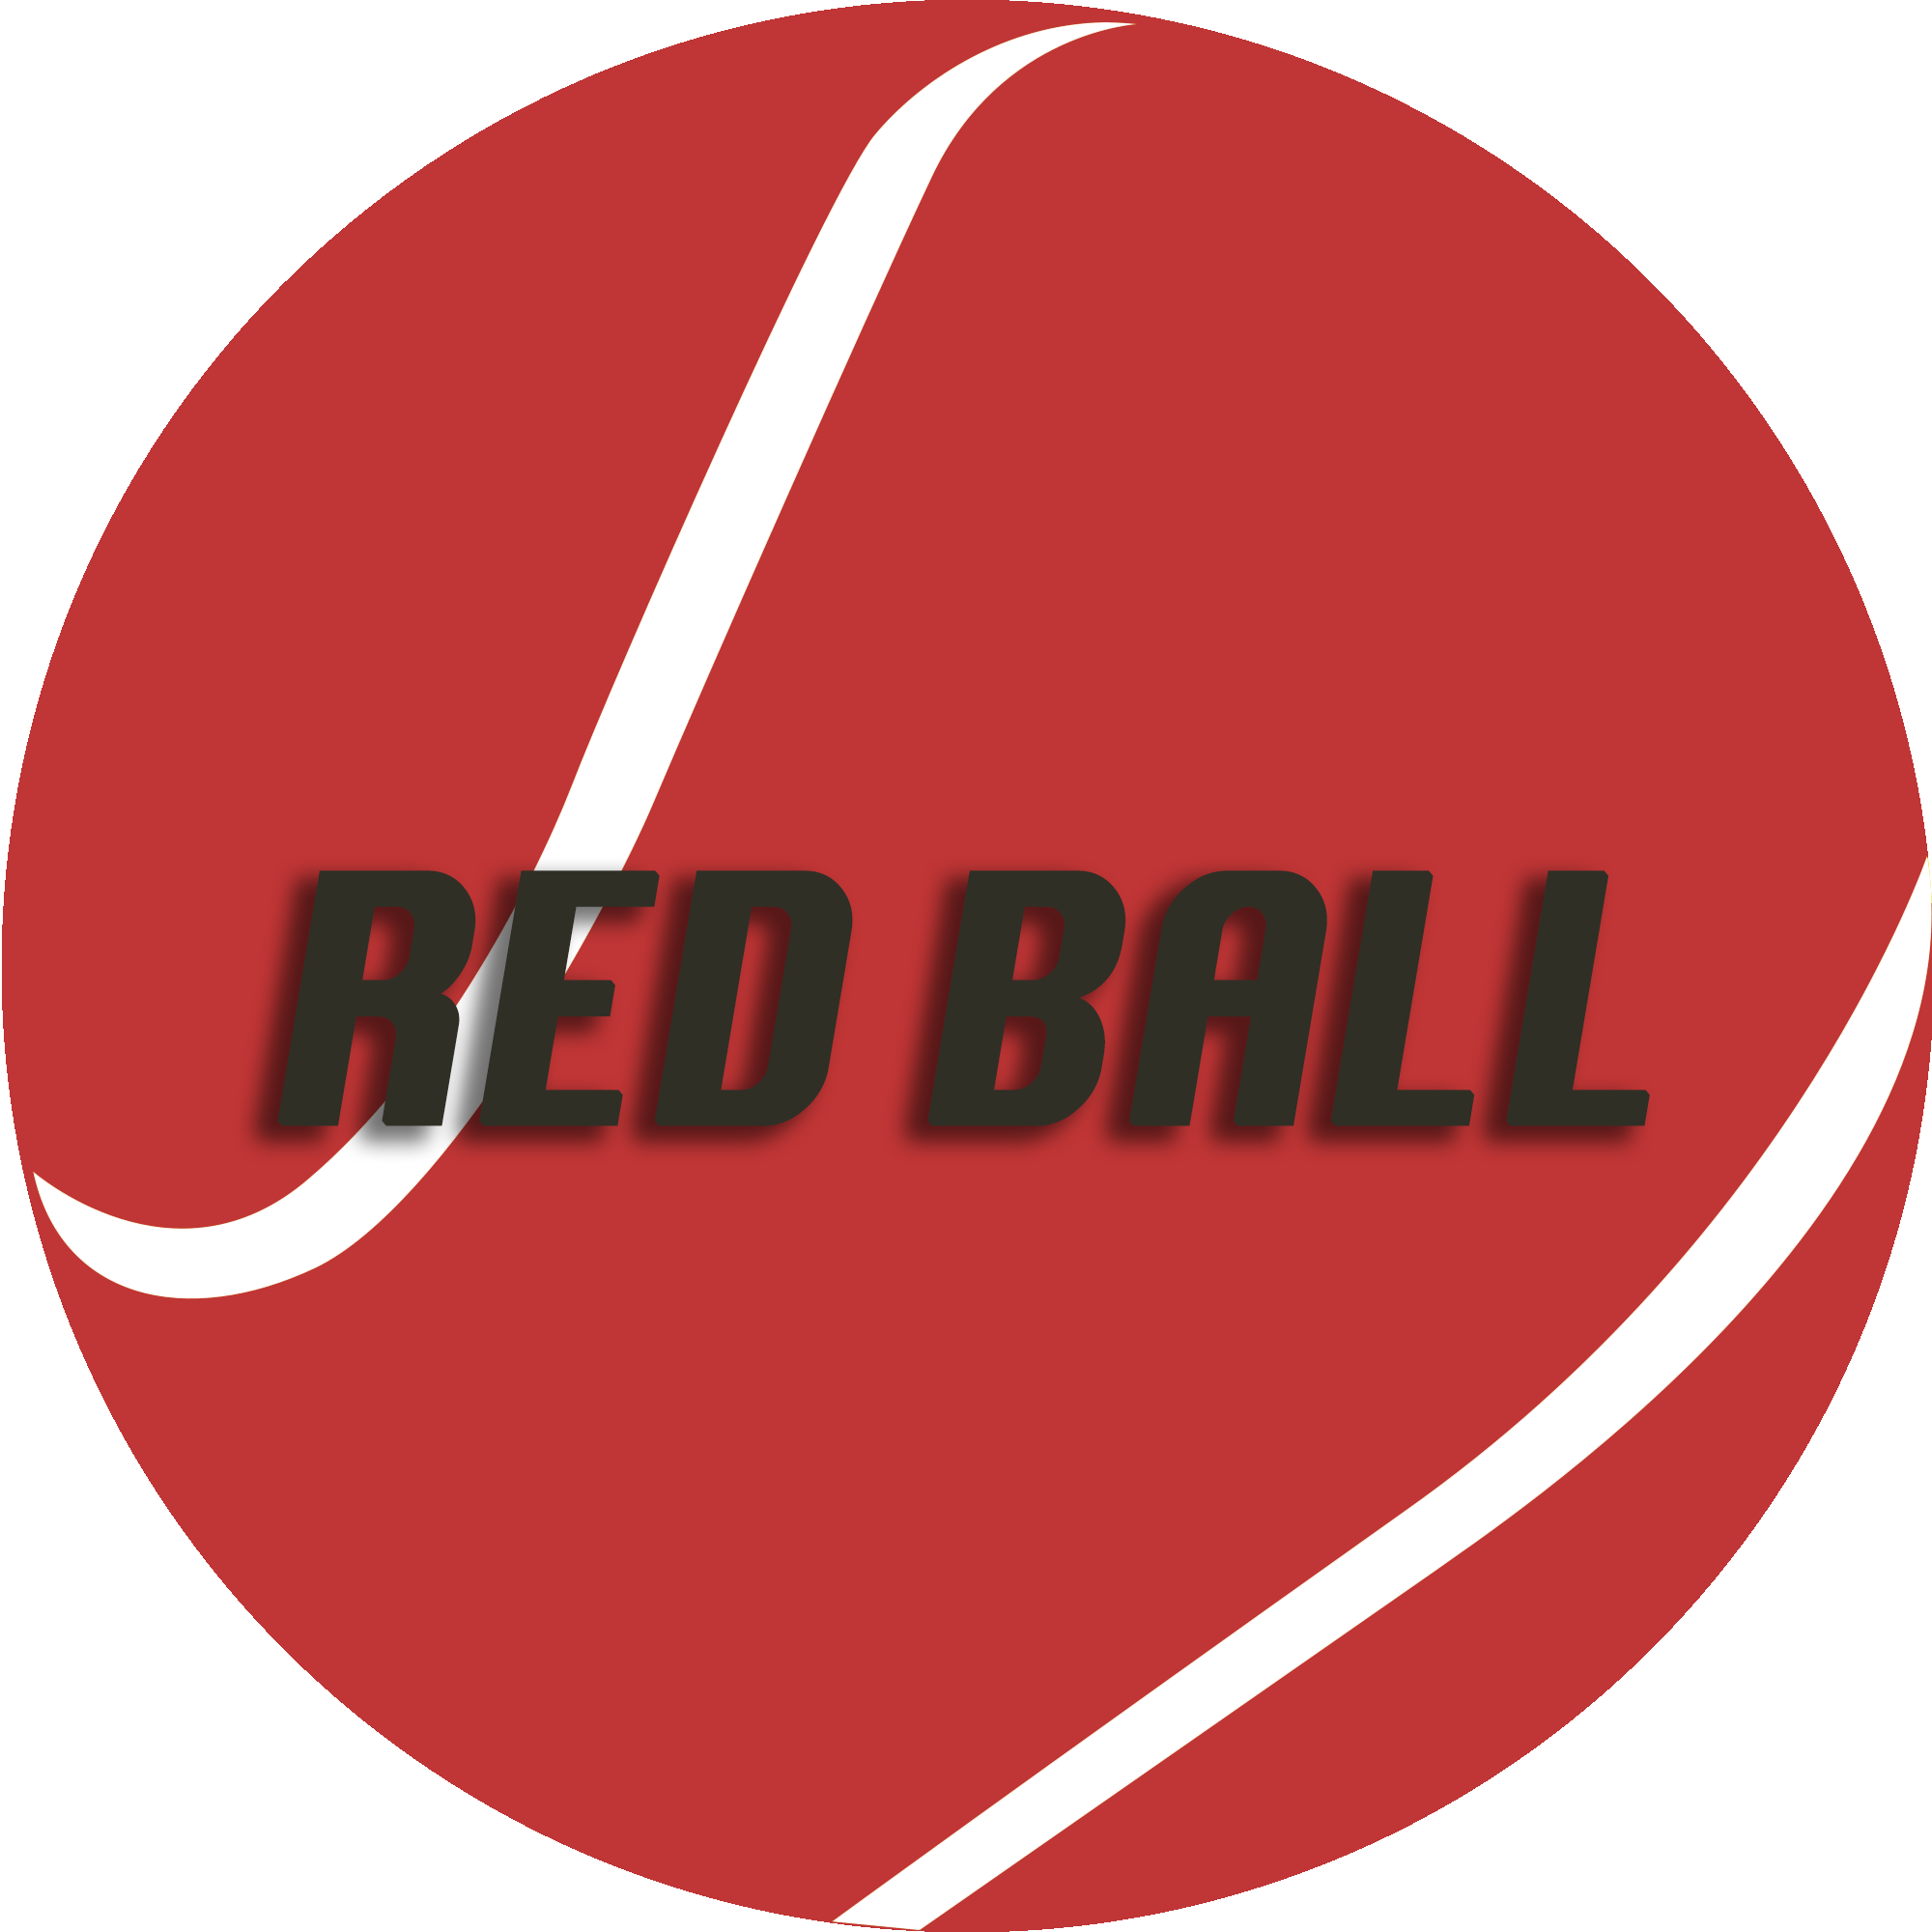 RED_BALL_1